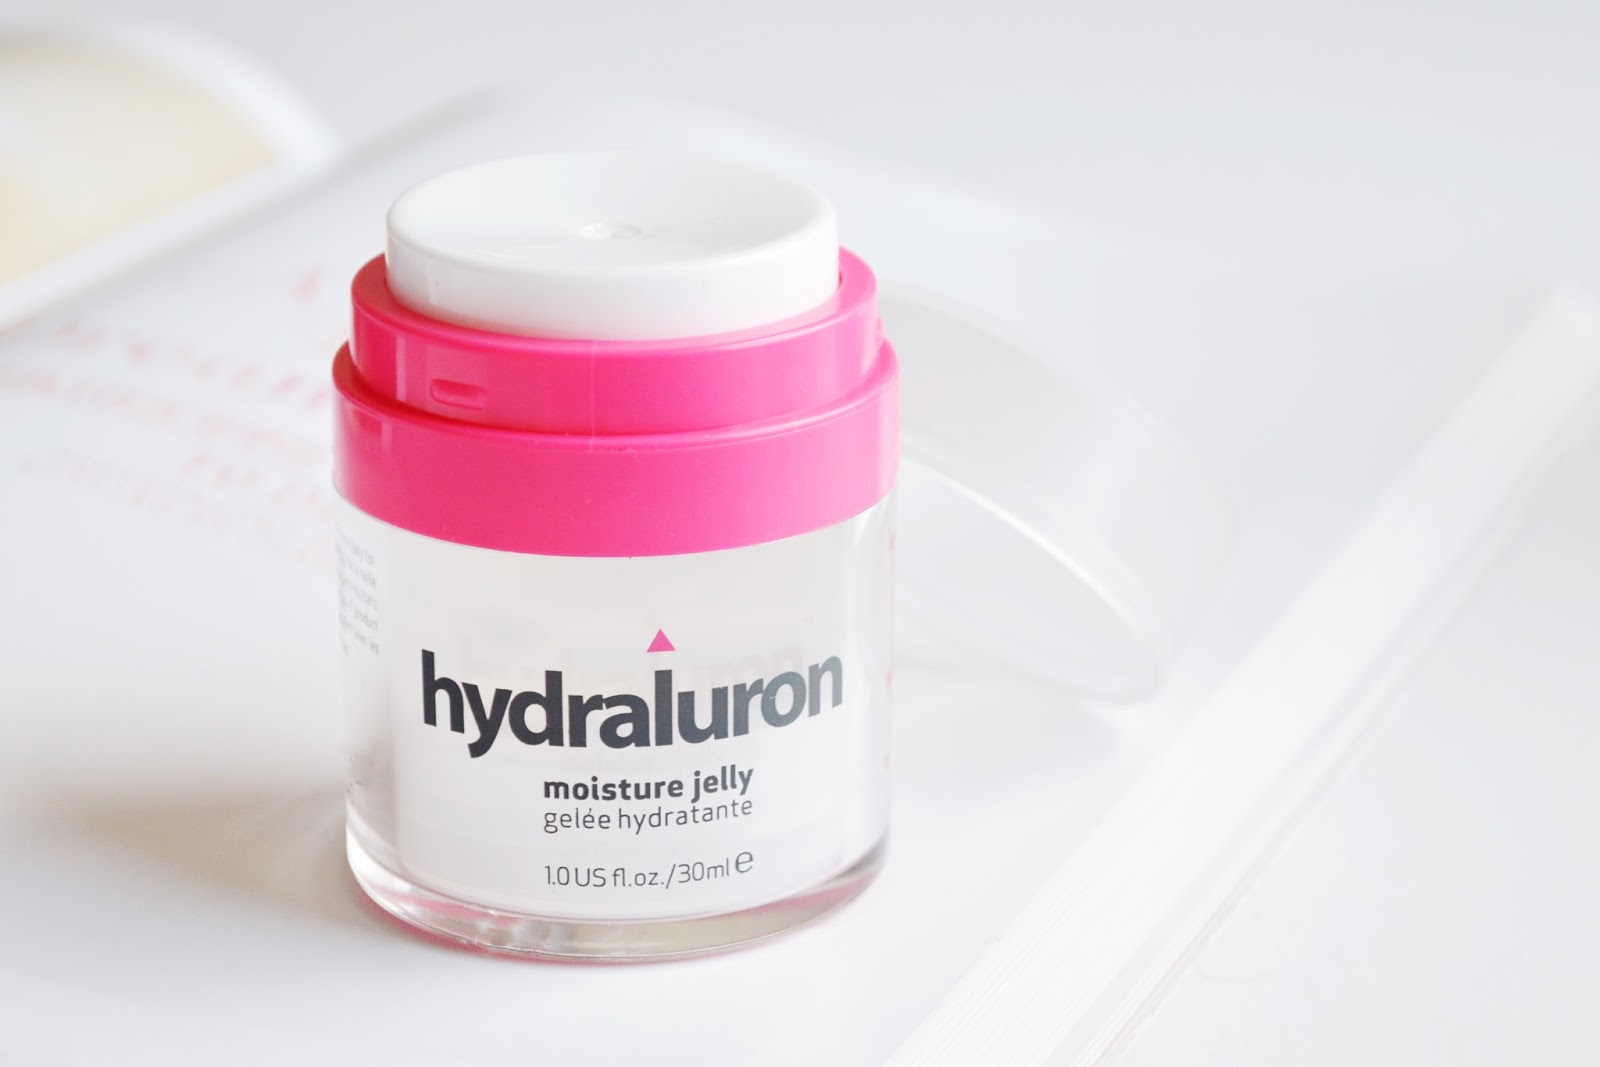 Hydraluron Moisture Jelly review